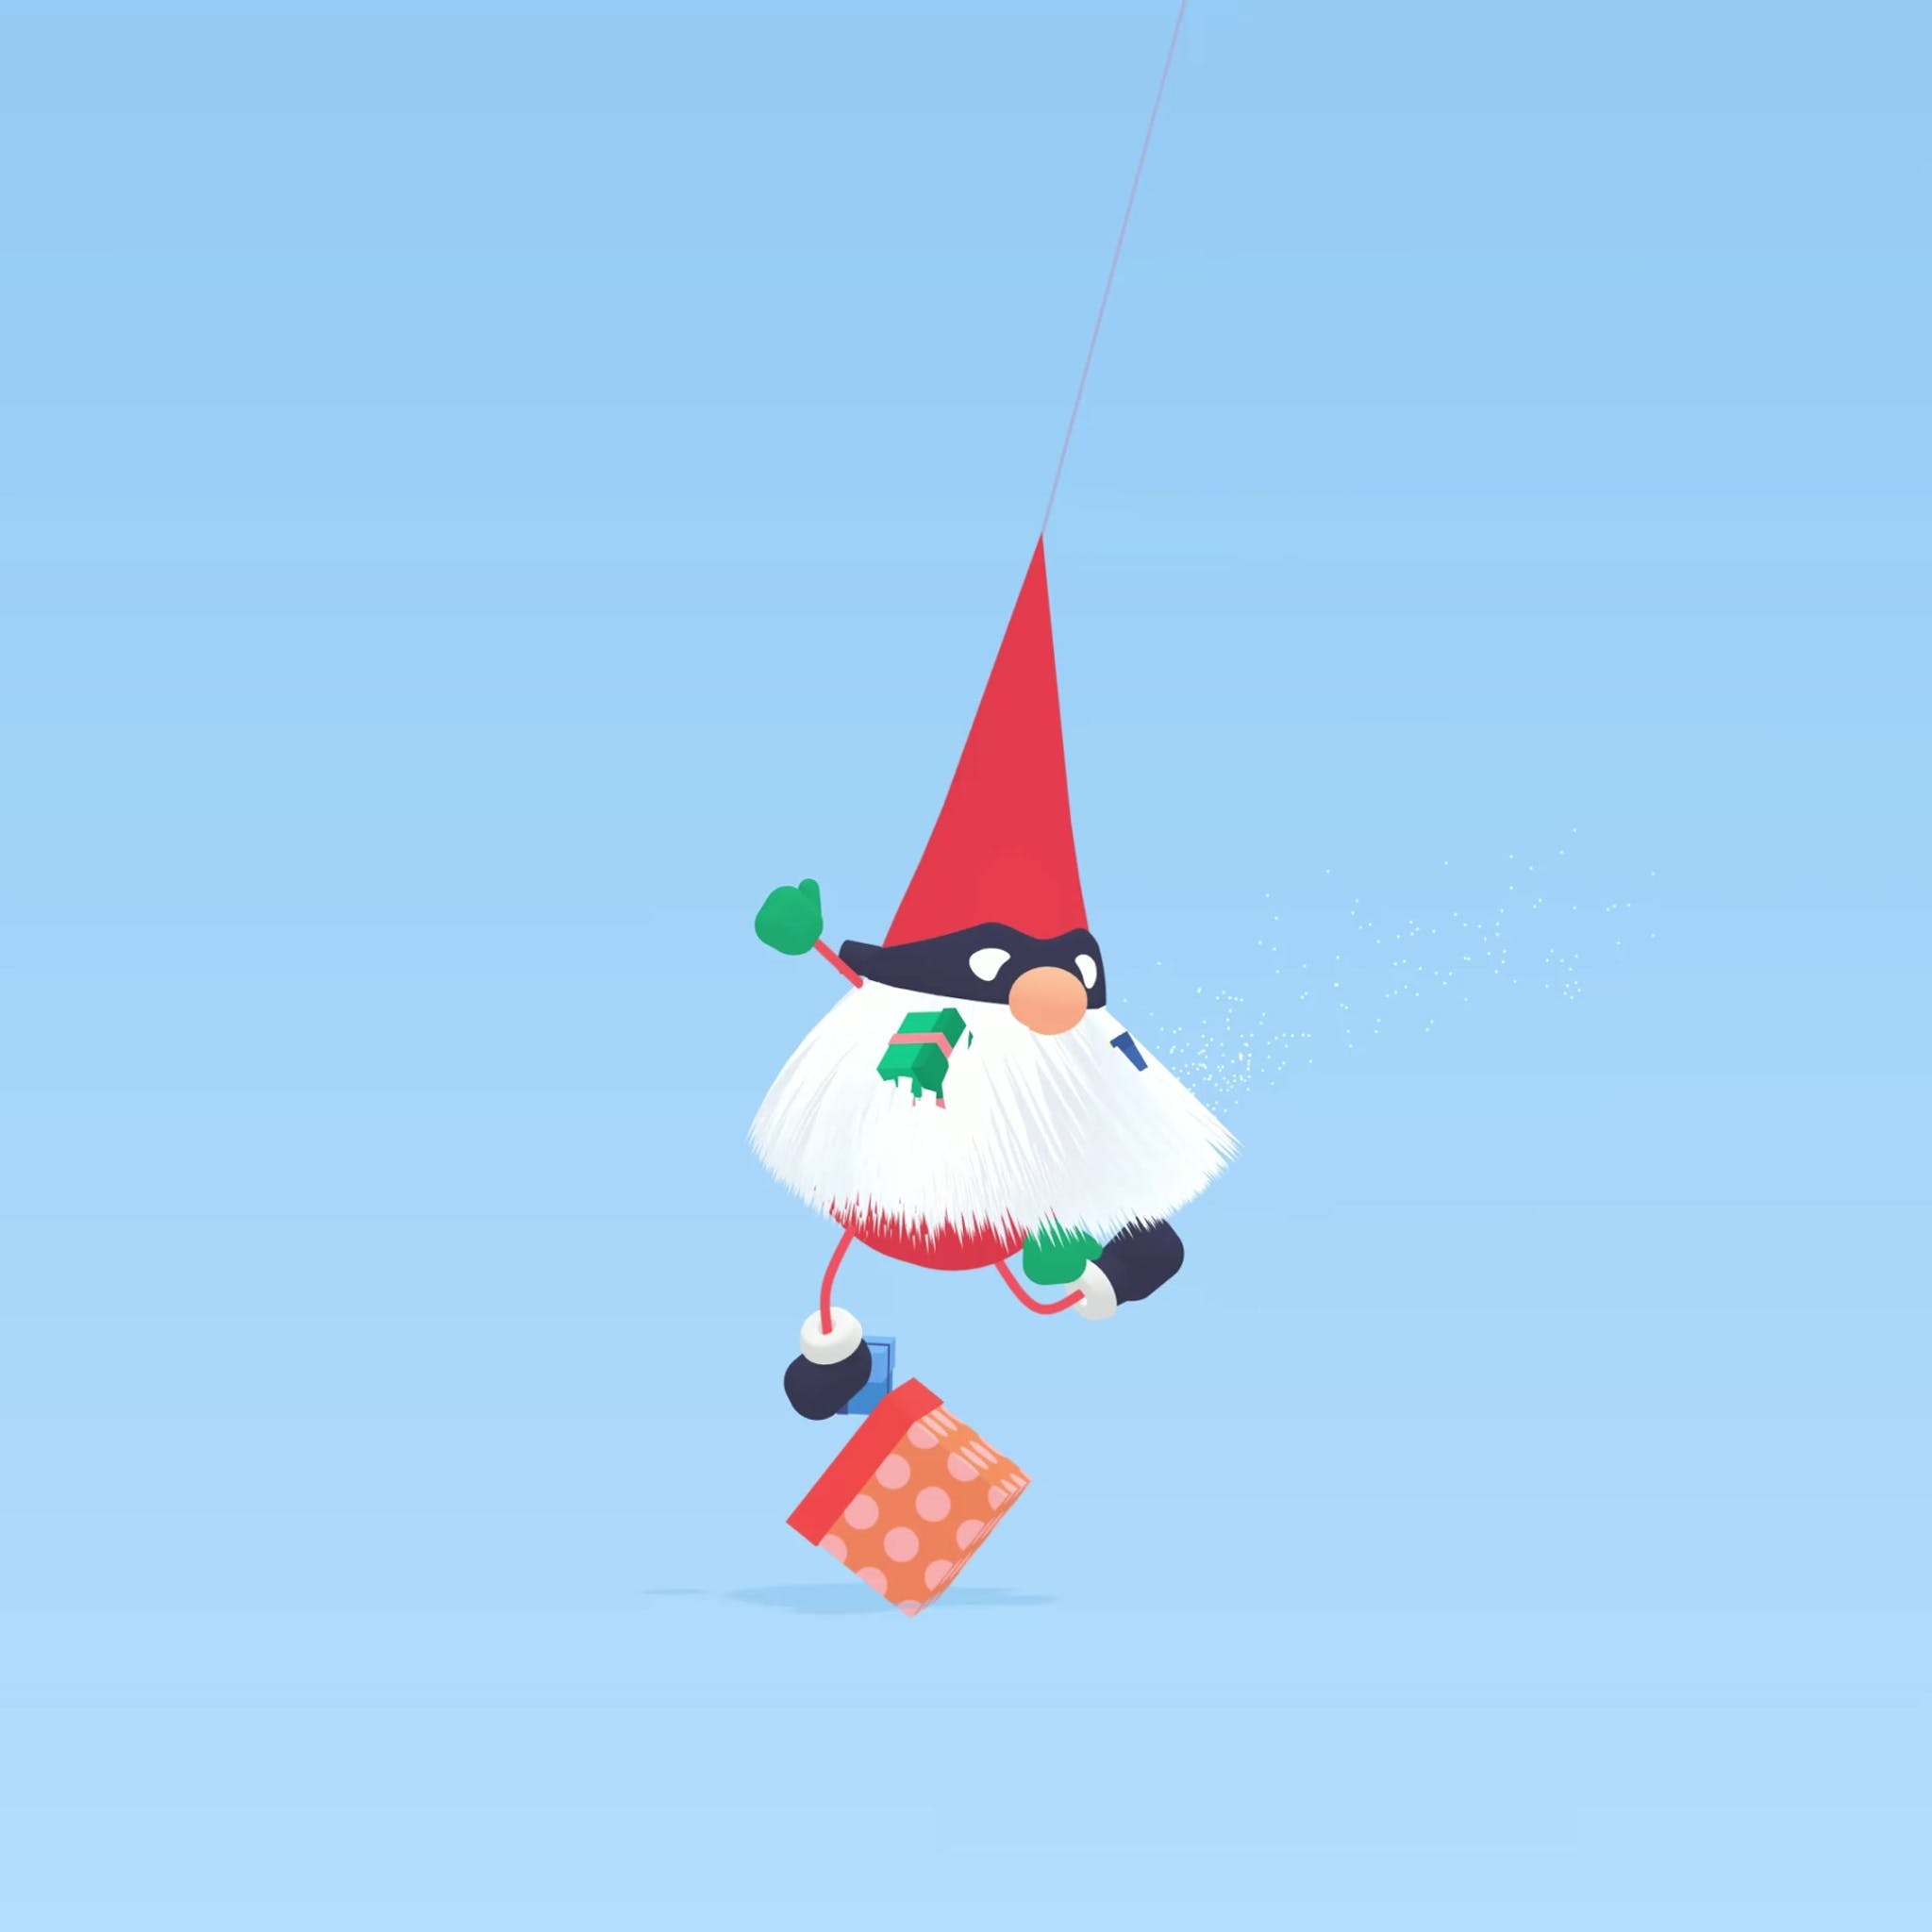 Sneaky Santa game, swinging him makes him drop presents that he stole